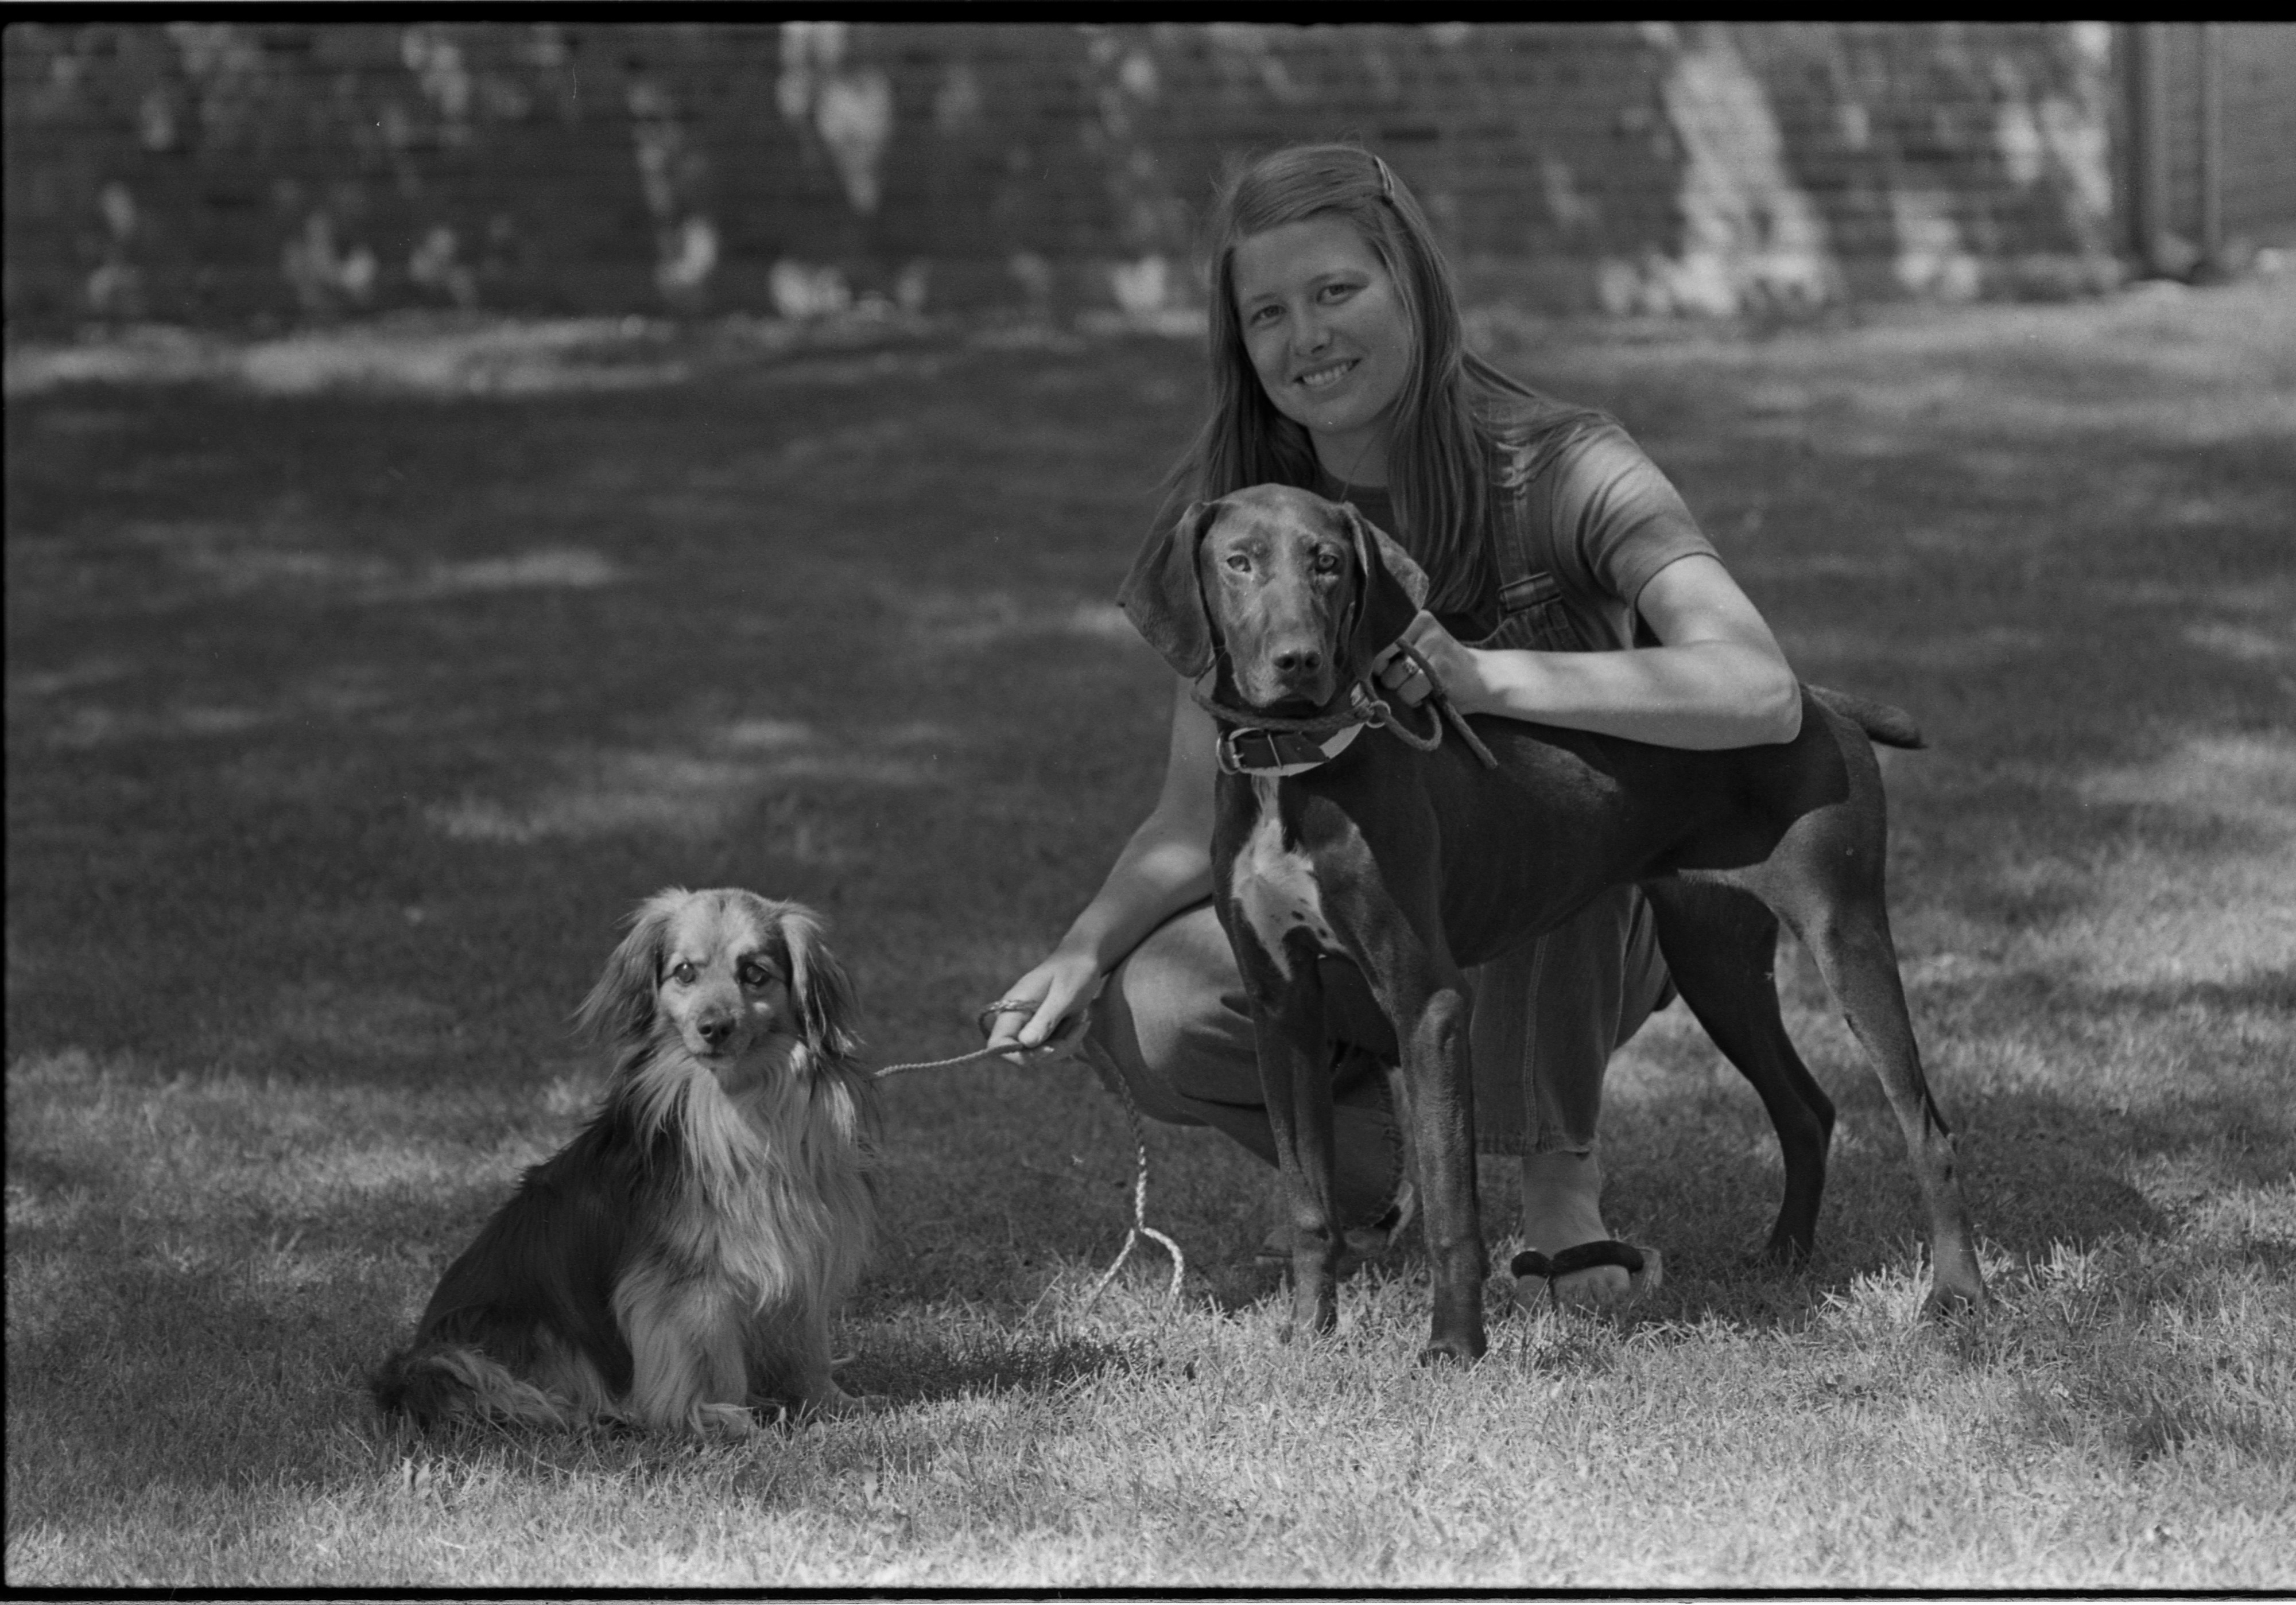 Humane Society Worker Susan Krause With Lost Dogs, July 1979 image